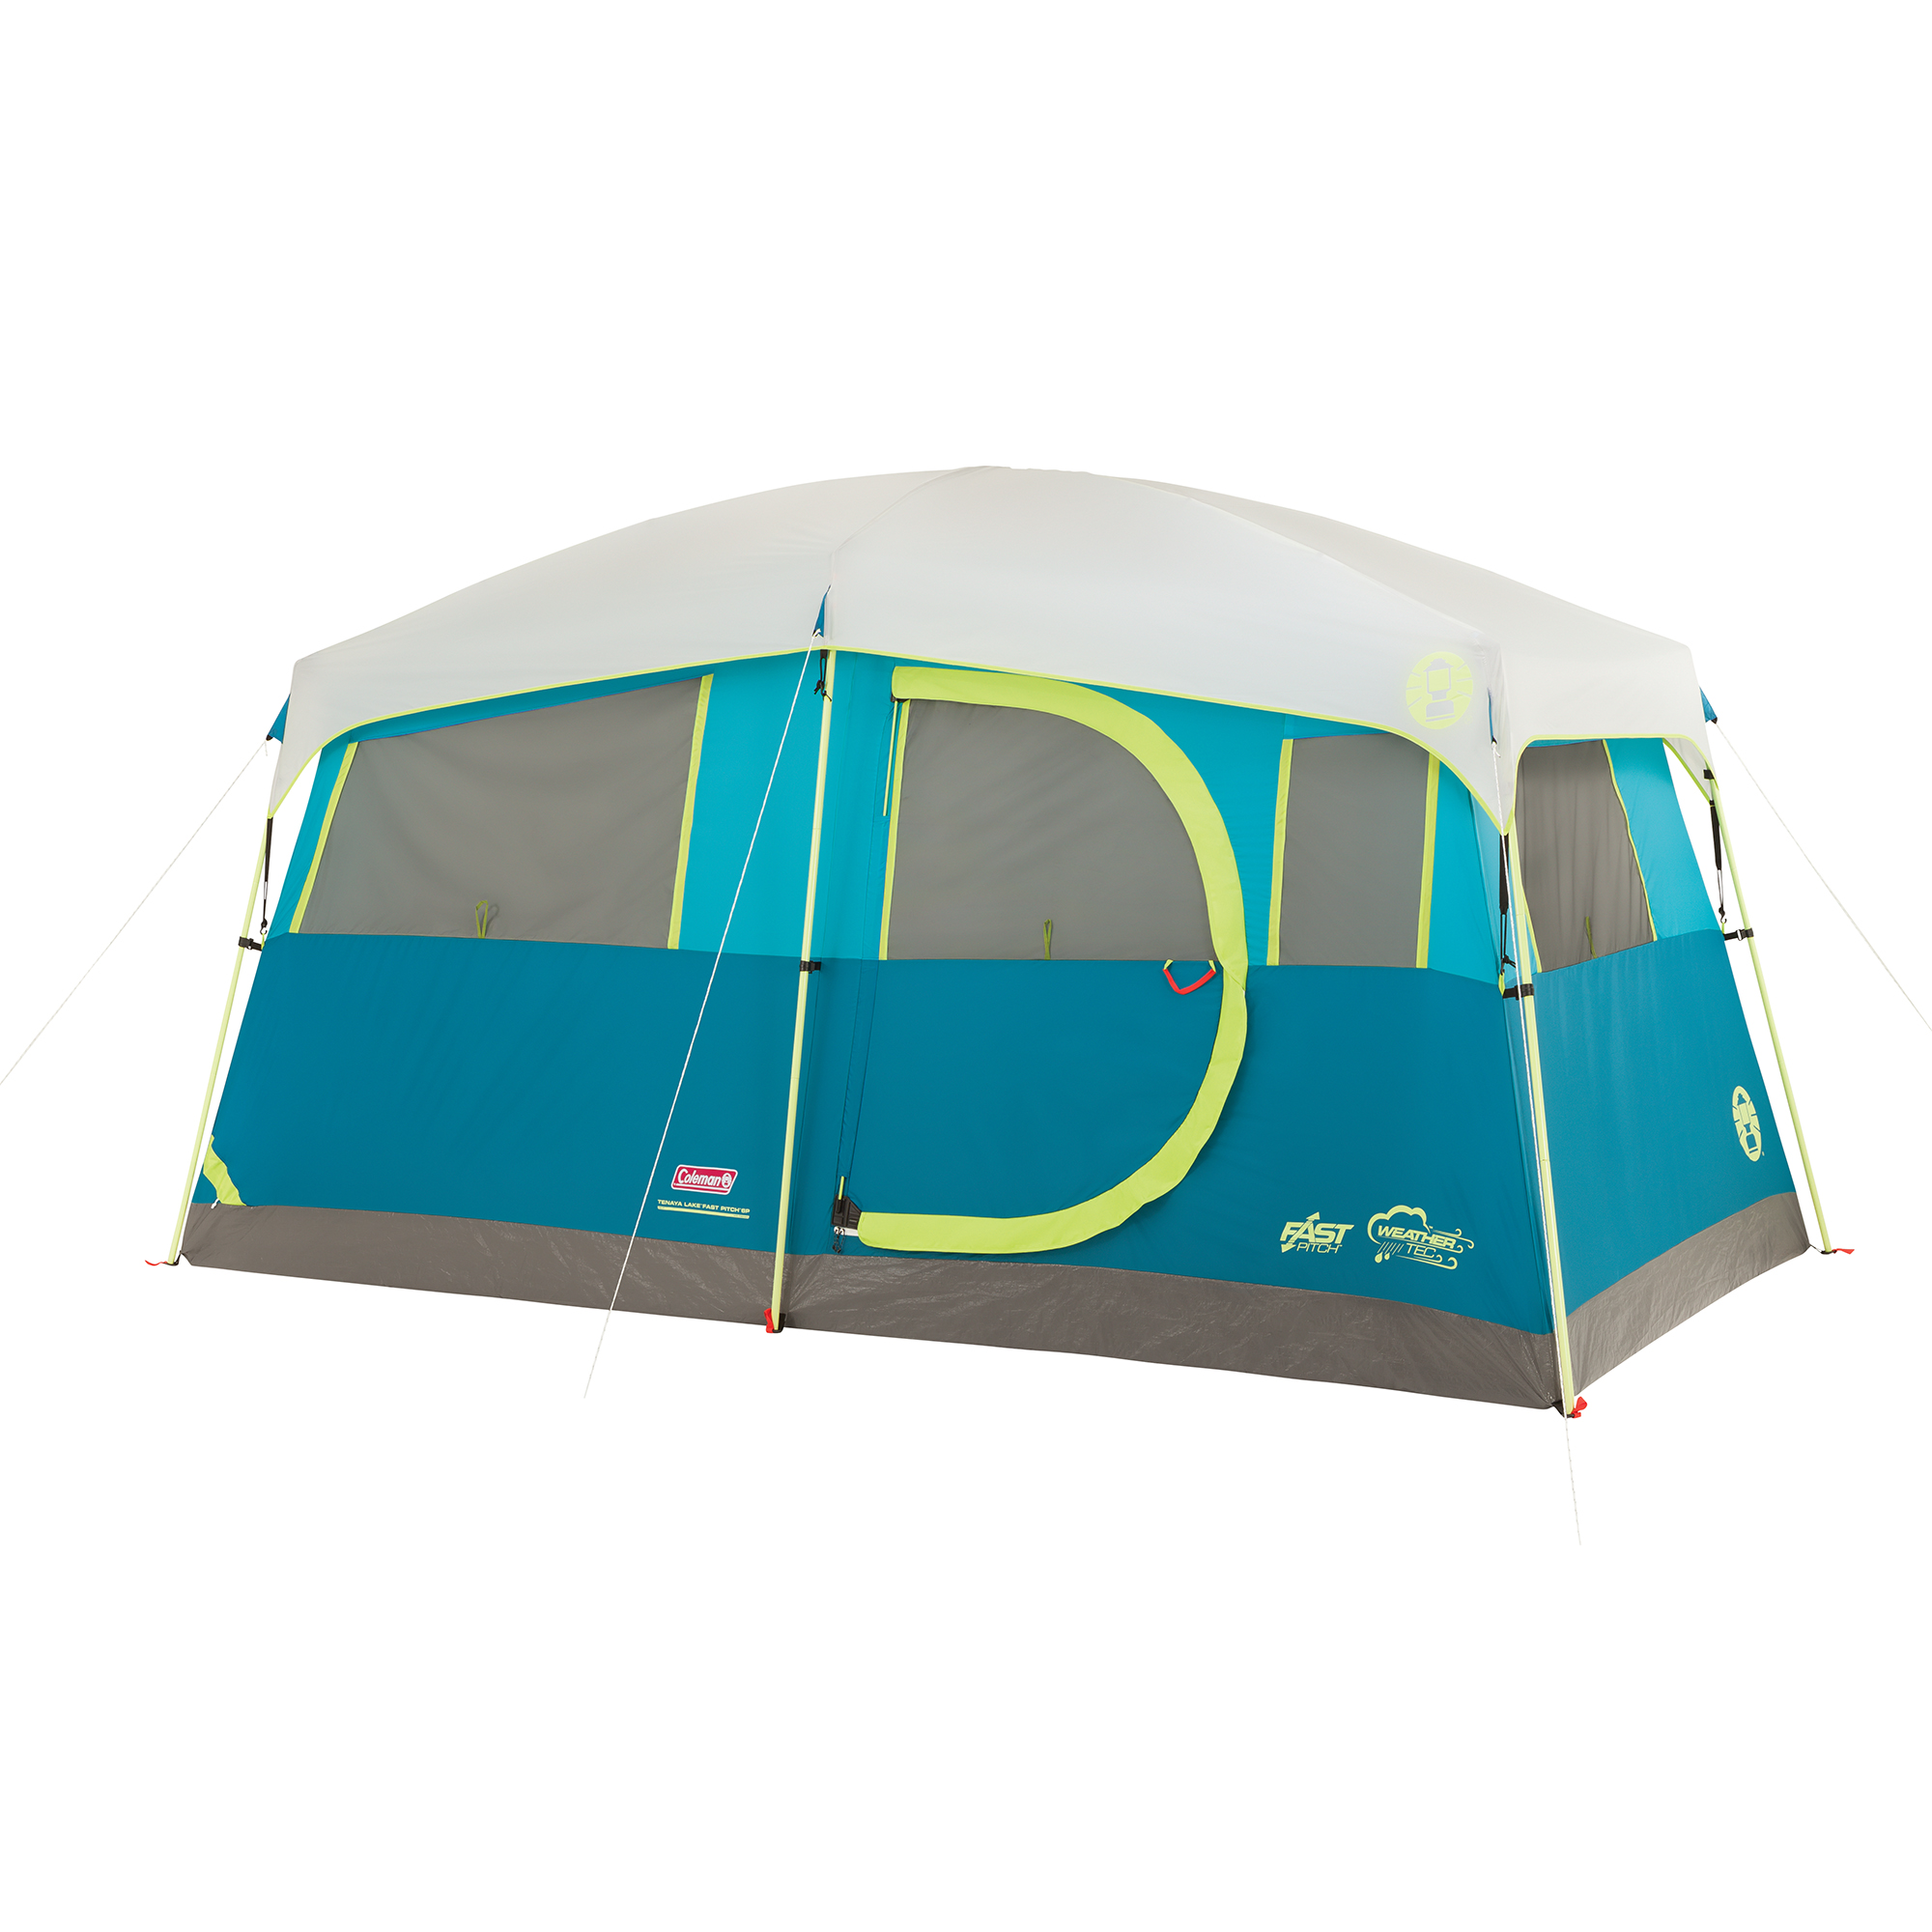 Coleman Tenaya Lake Fast Pitch 6-Person Cabin Tent with Built-In Cabinets by COLEMAN